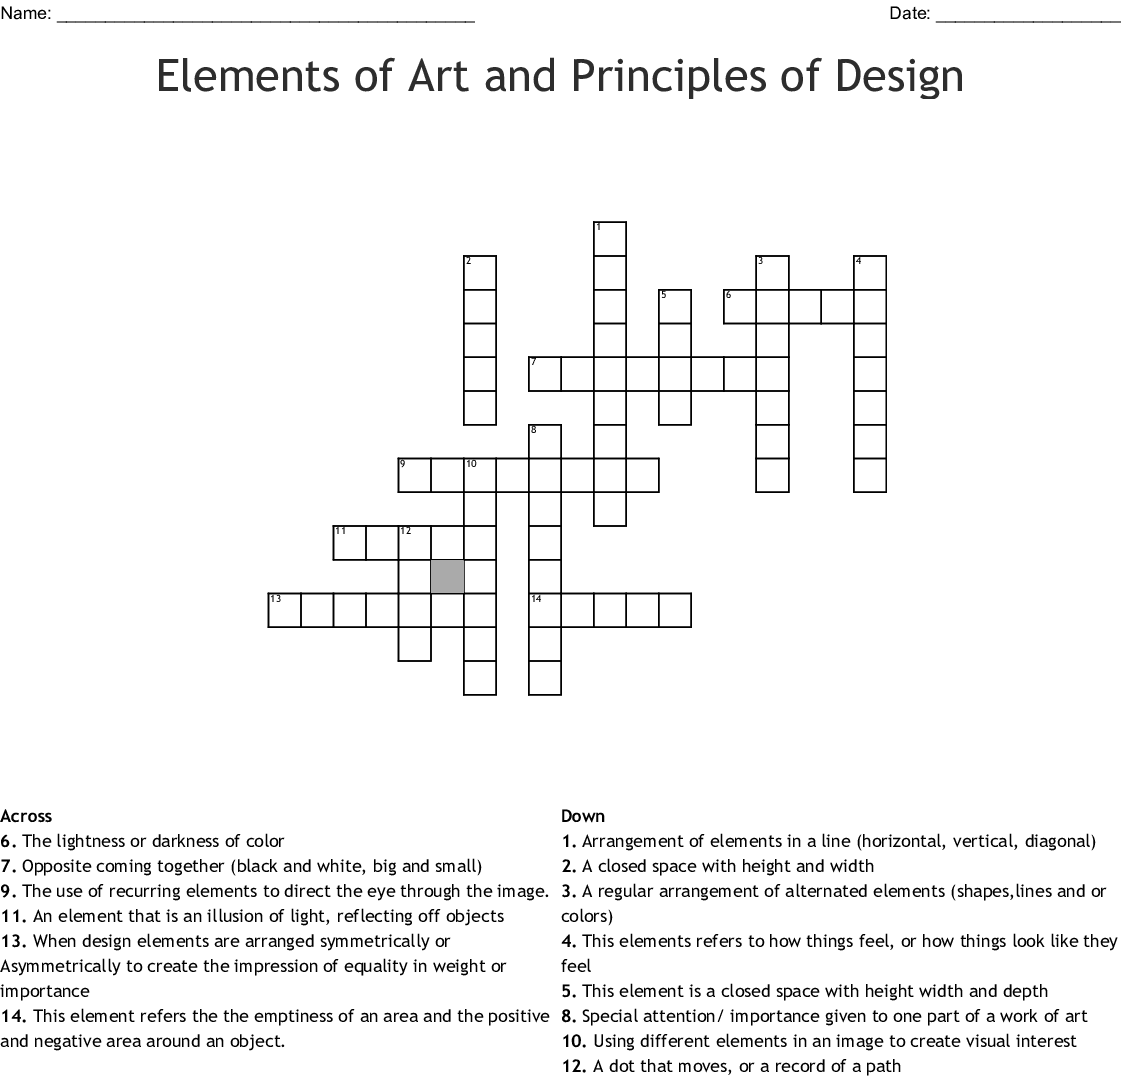 Elements Of Art Amp Principles Of Design Word Search